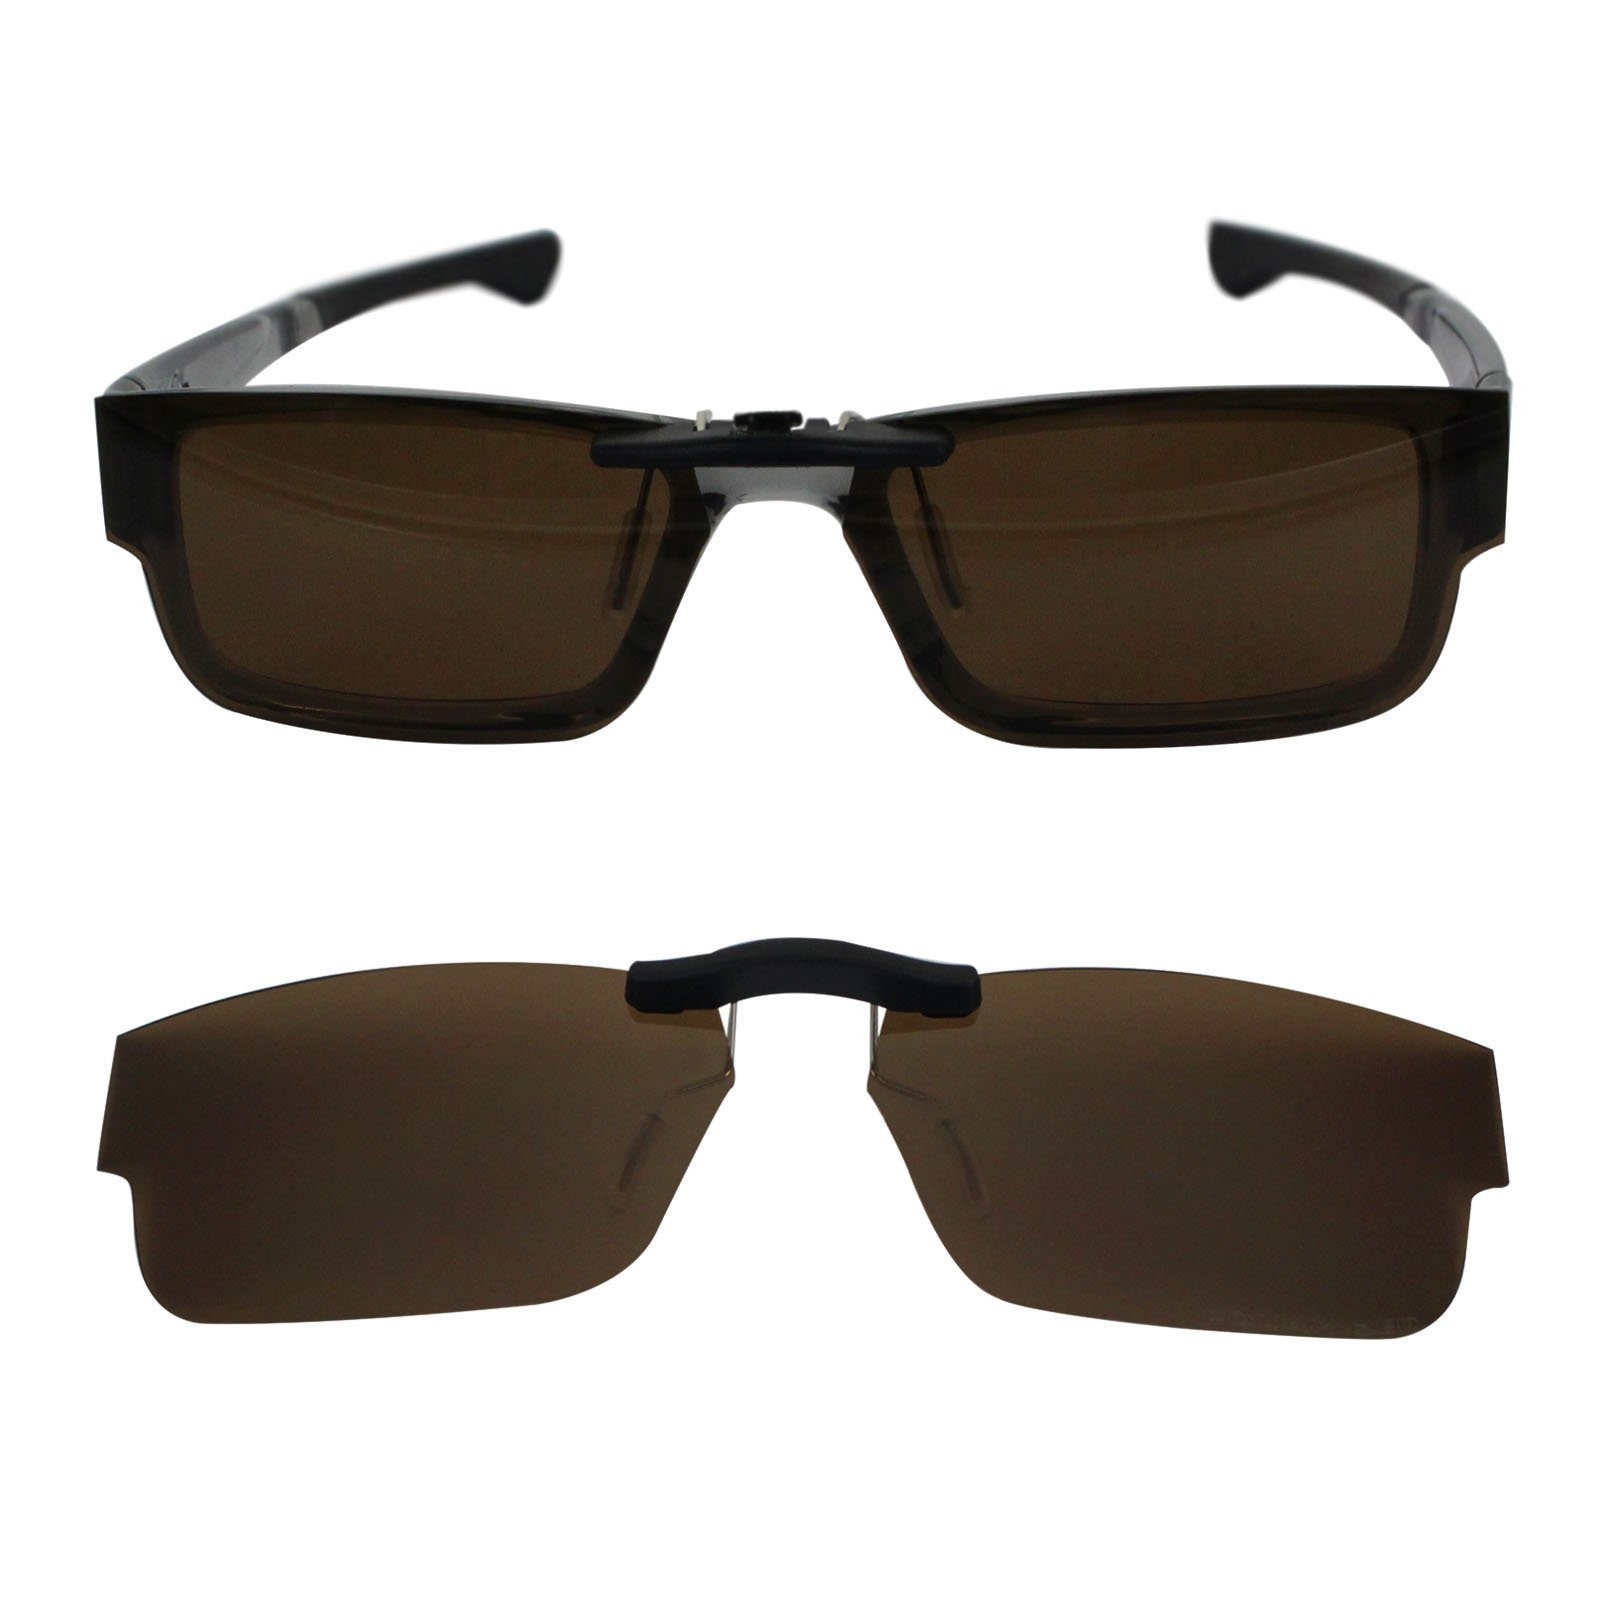 Custom Polarized Clip on Sunglasses For Oakley Airdrop 51 OX8046 51-18-143 (Brown) by oGeee (Image #1)